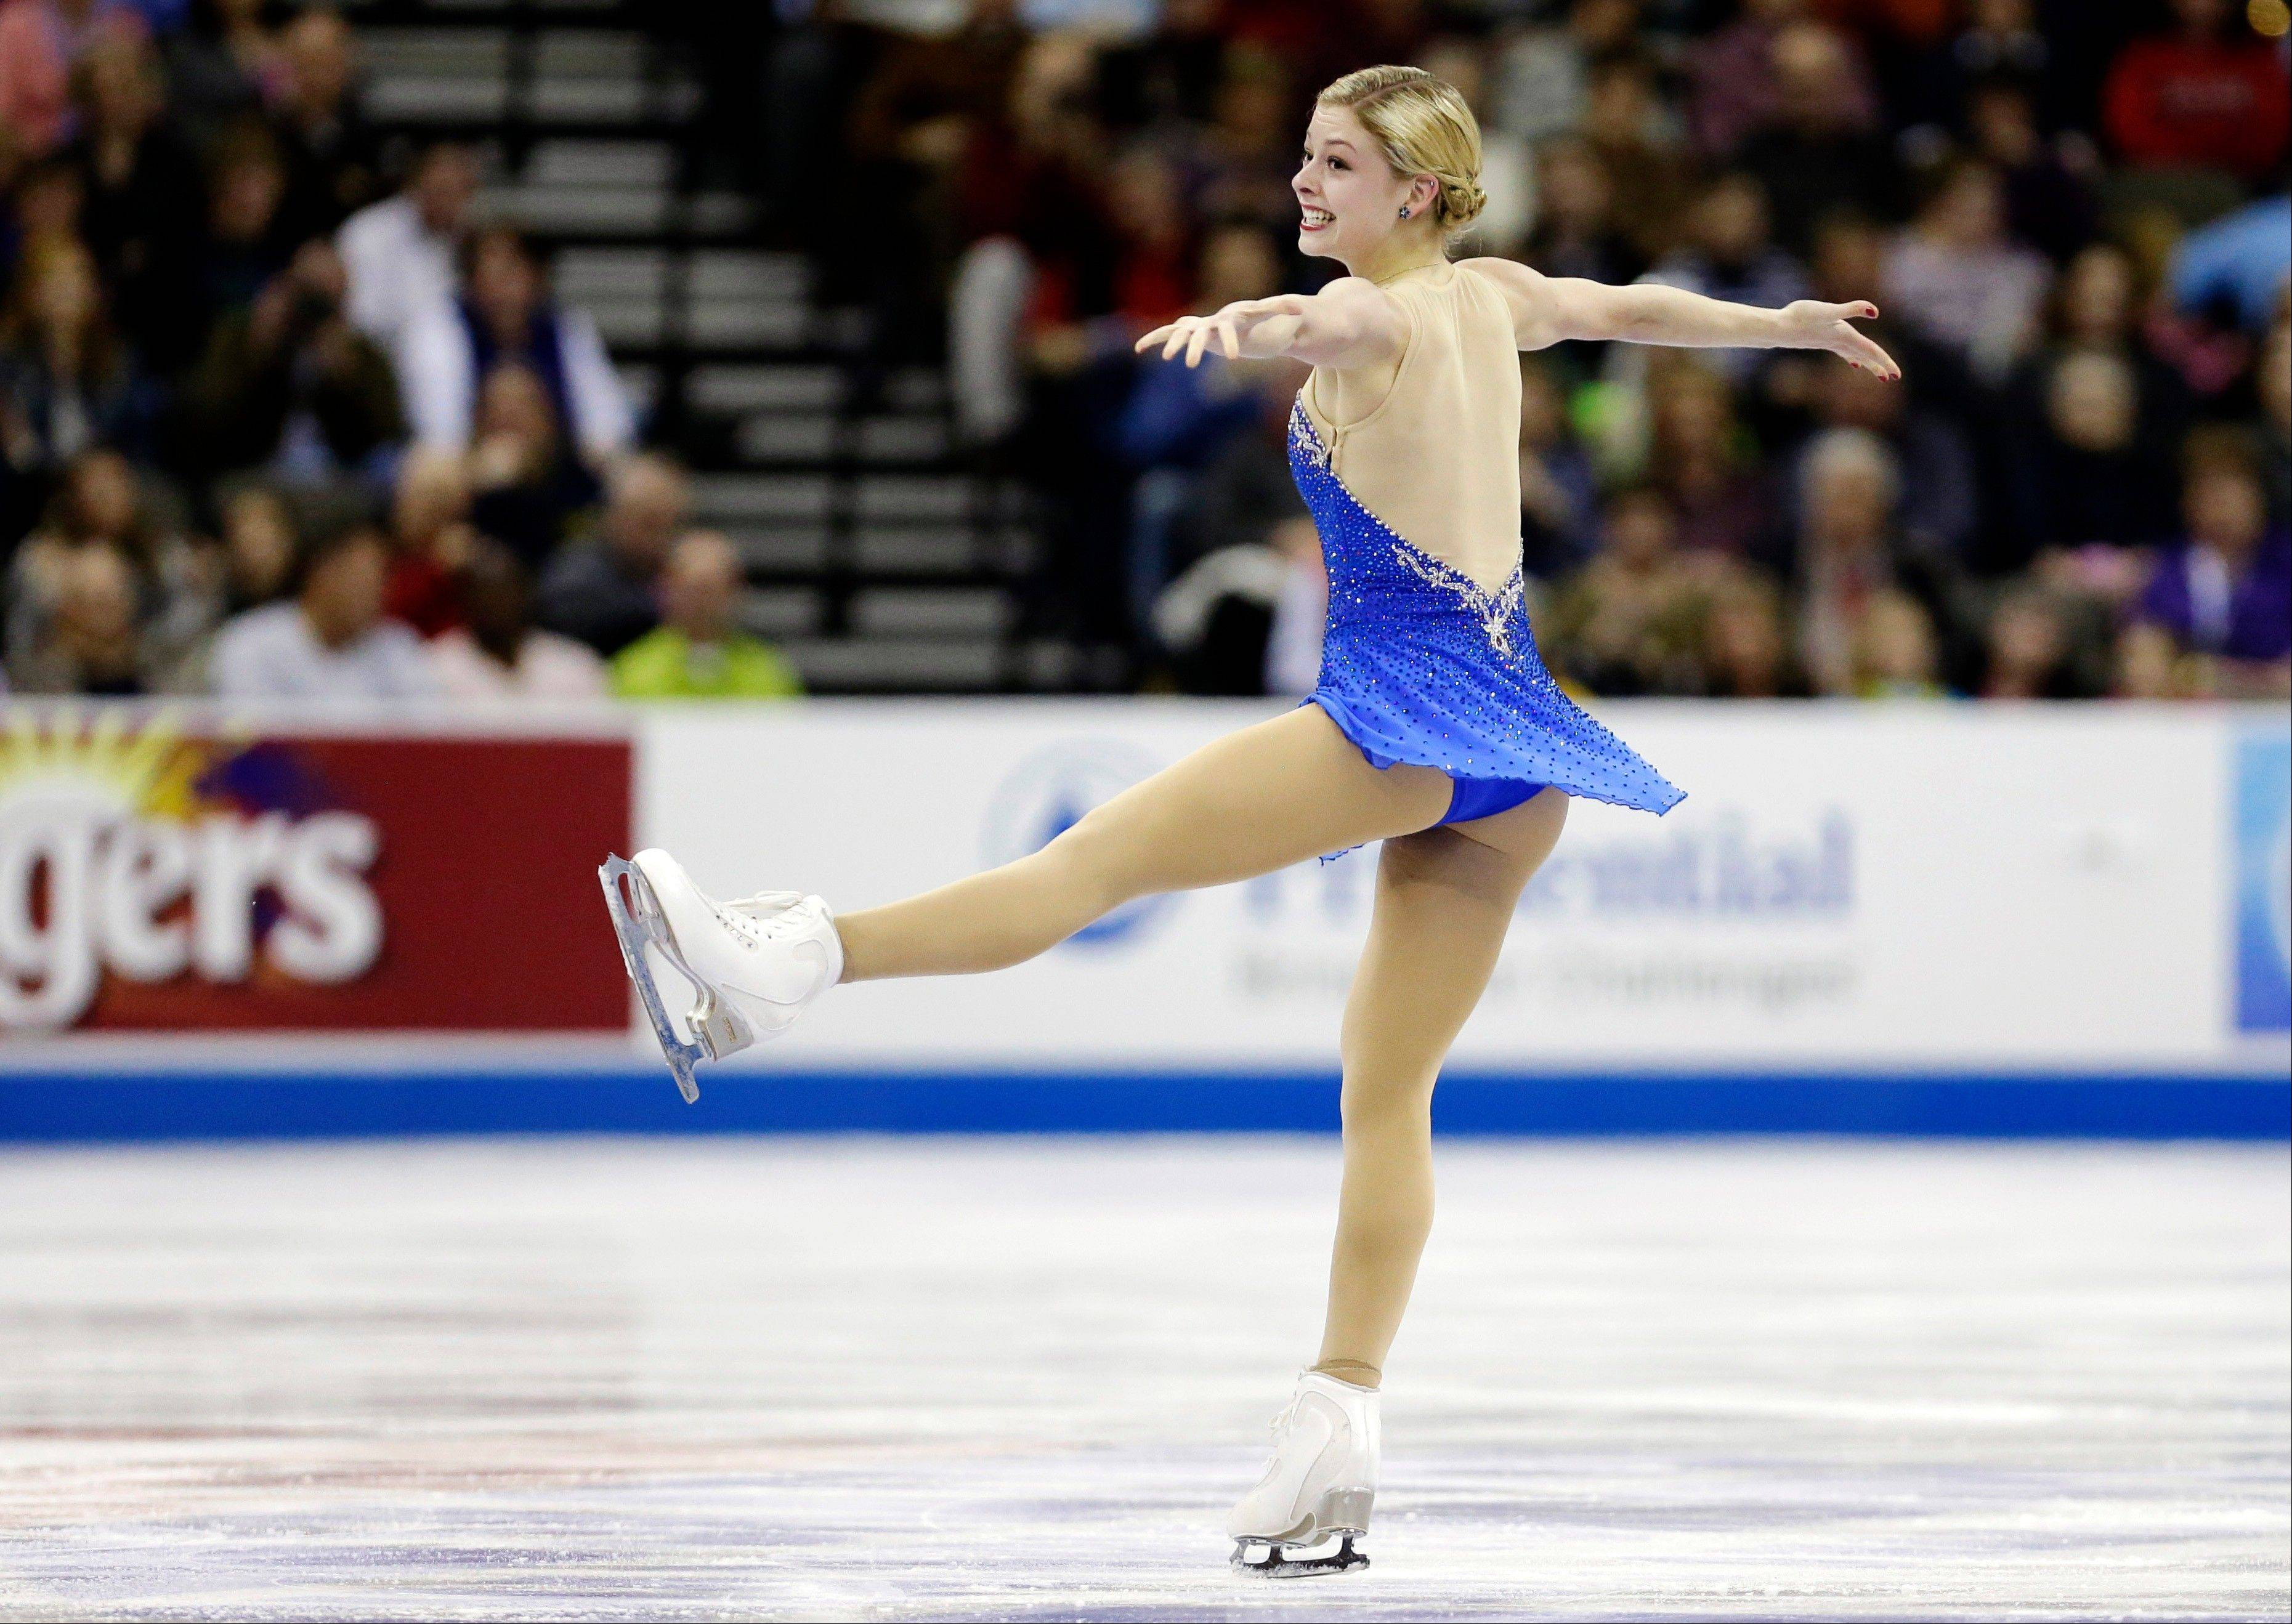 Gracie Gold competes during the senior ladies free skate program Saturday in Omaha.